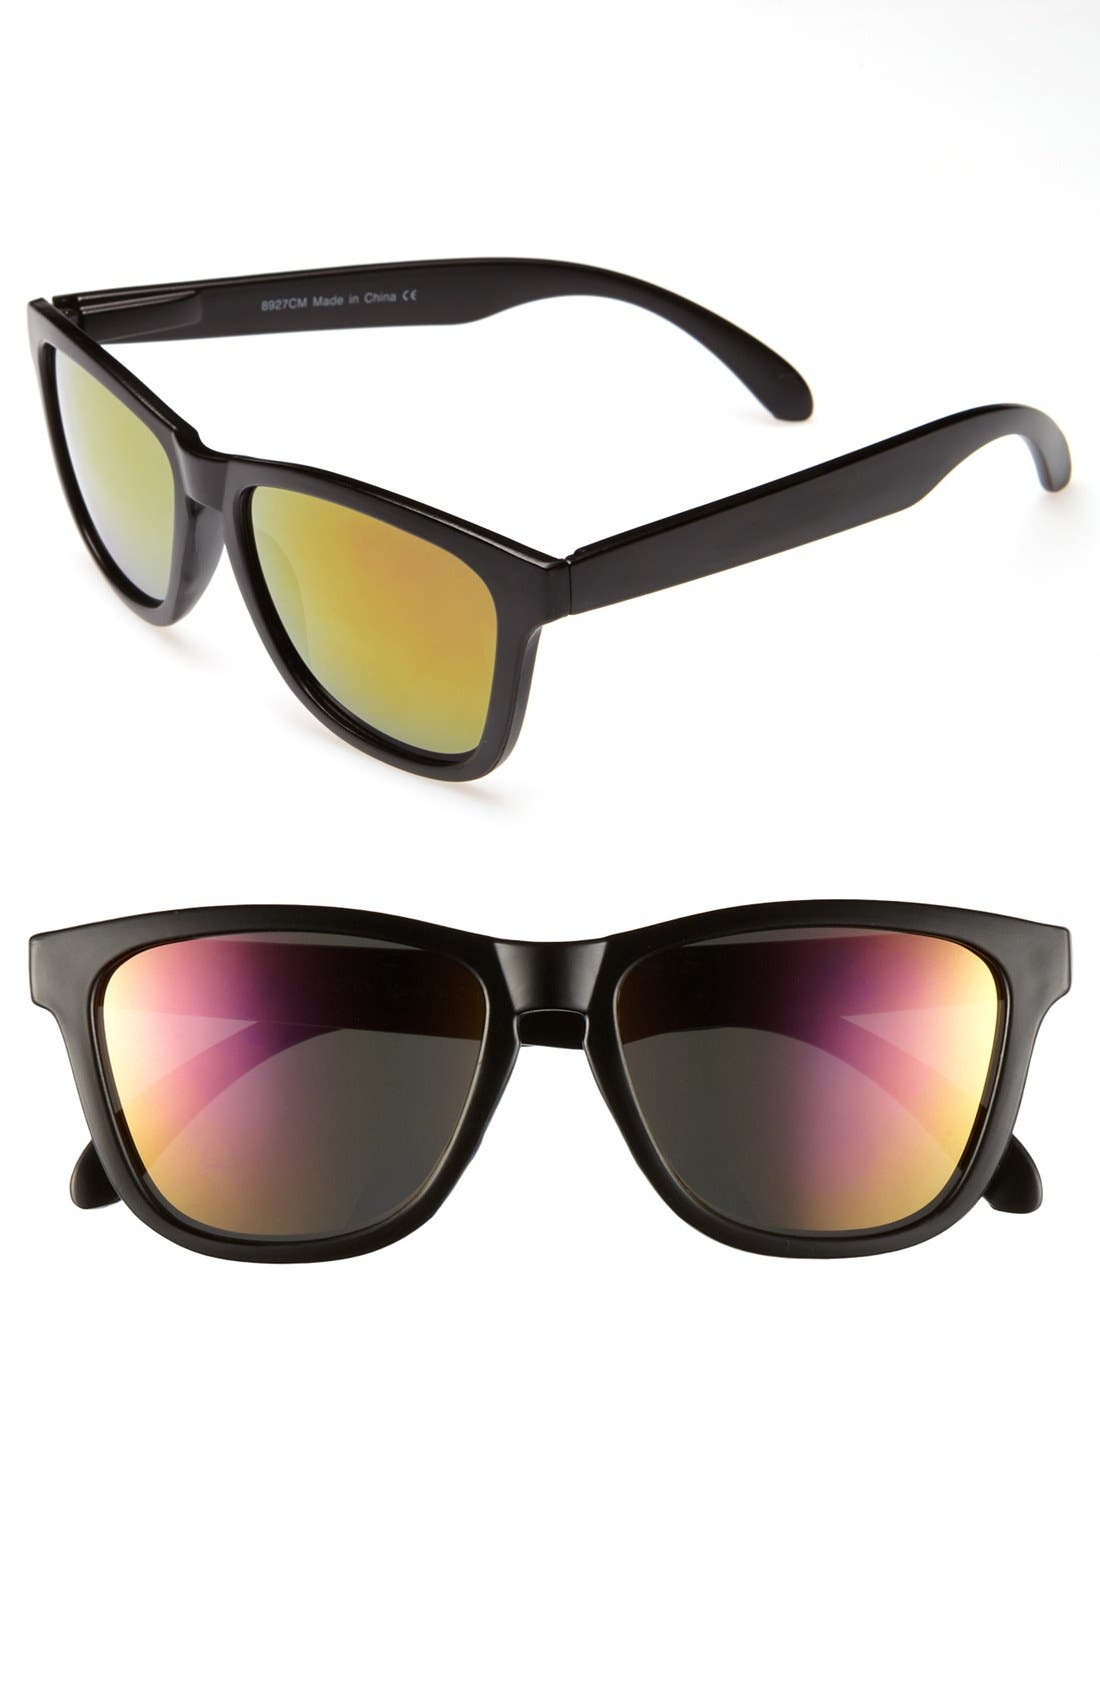 Main Image - KW 'Comet' Sunglasses